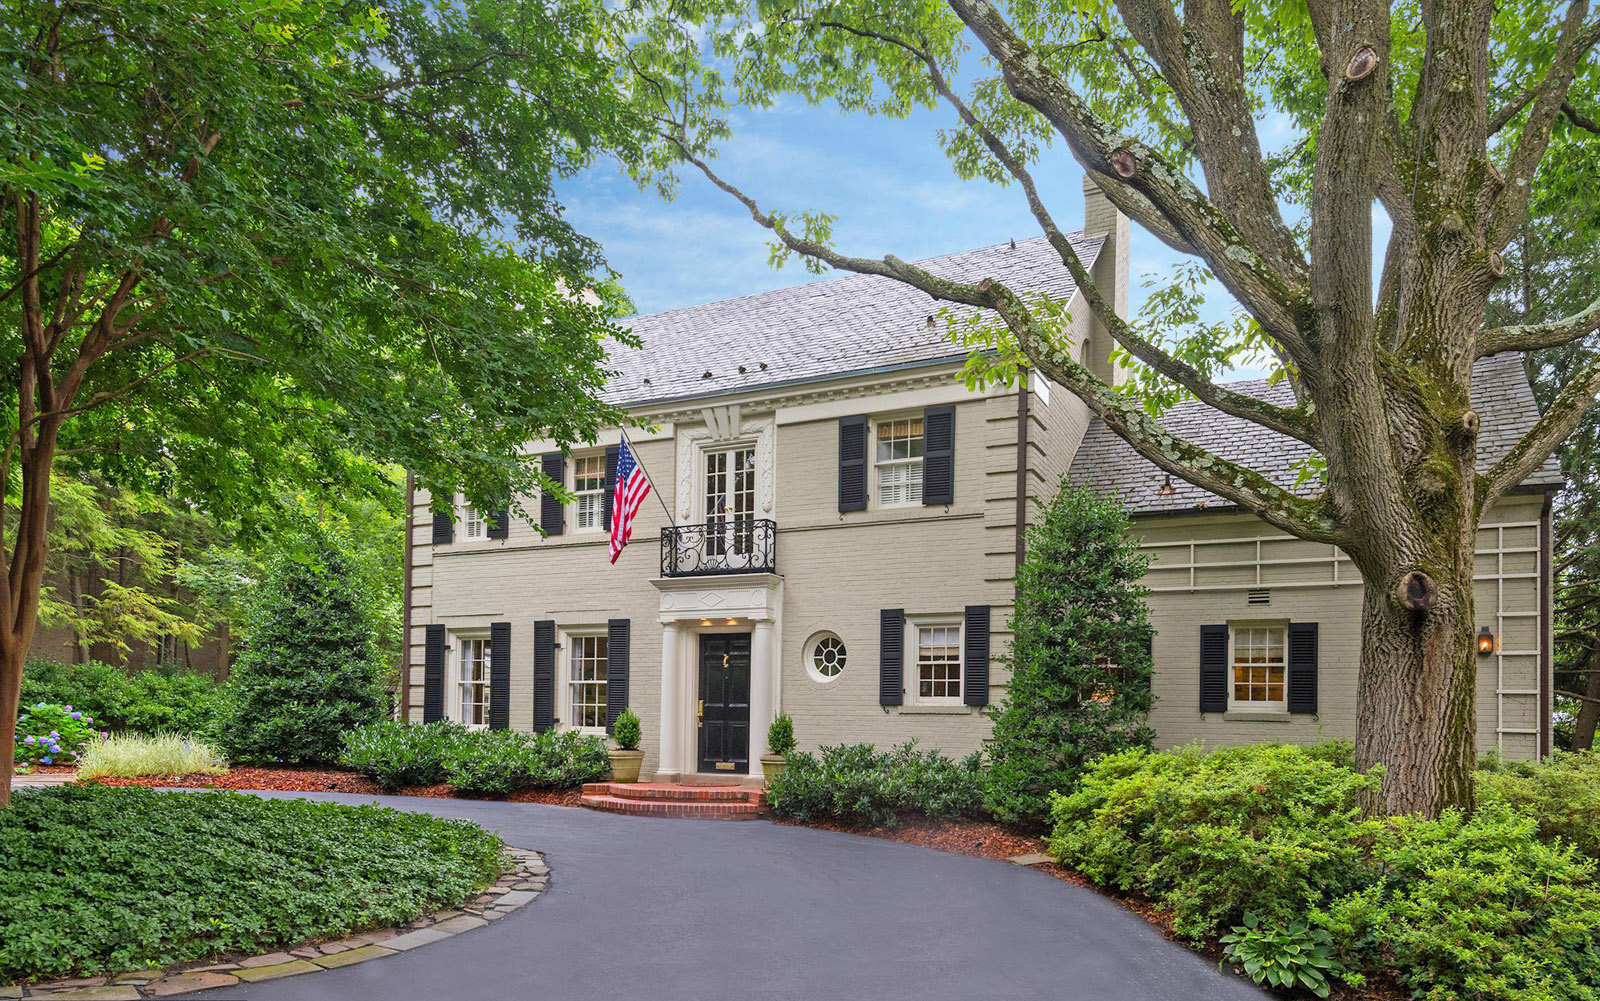 4619 CHARLESTON TERRACE NORTHWEST     Th detached colonial at 4619 Charleston Terrace NW features four bedrooms and four baths. Constructed in 1941, the home sold for $2.55 million in November.  (Courtesy MRIS)